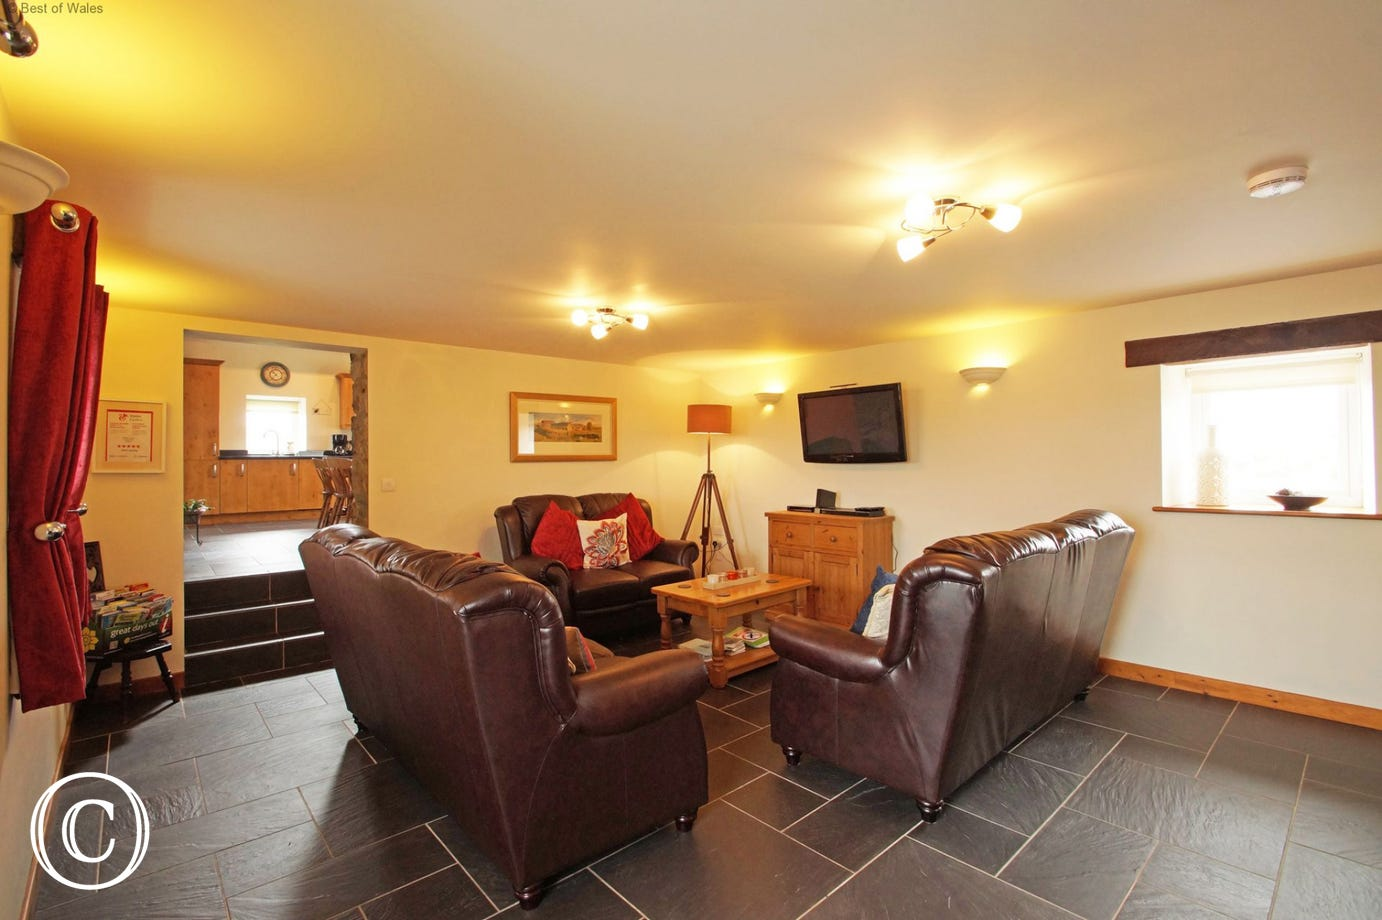 Spacious living room with leather settees and underfloor heating